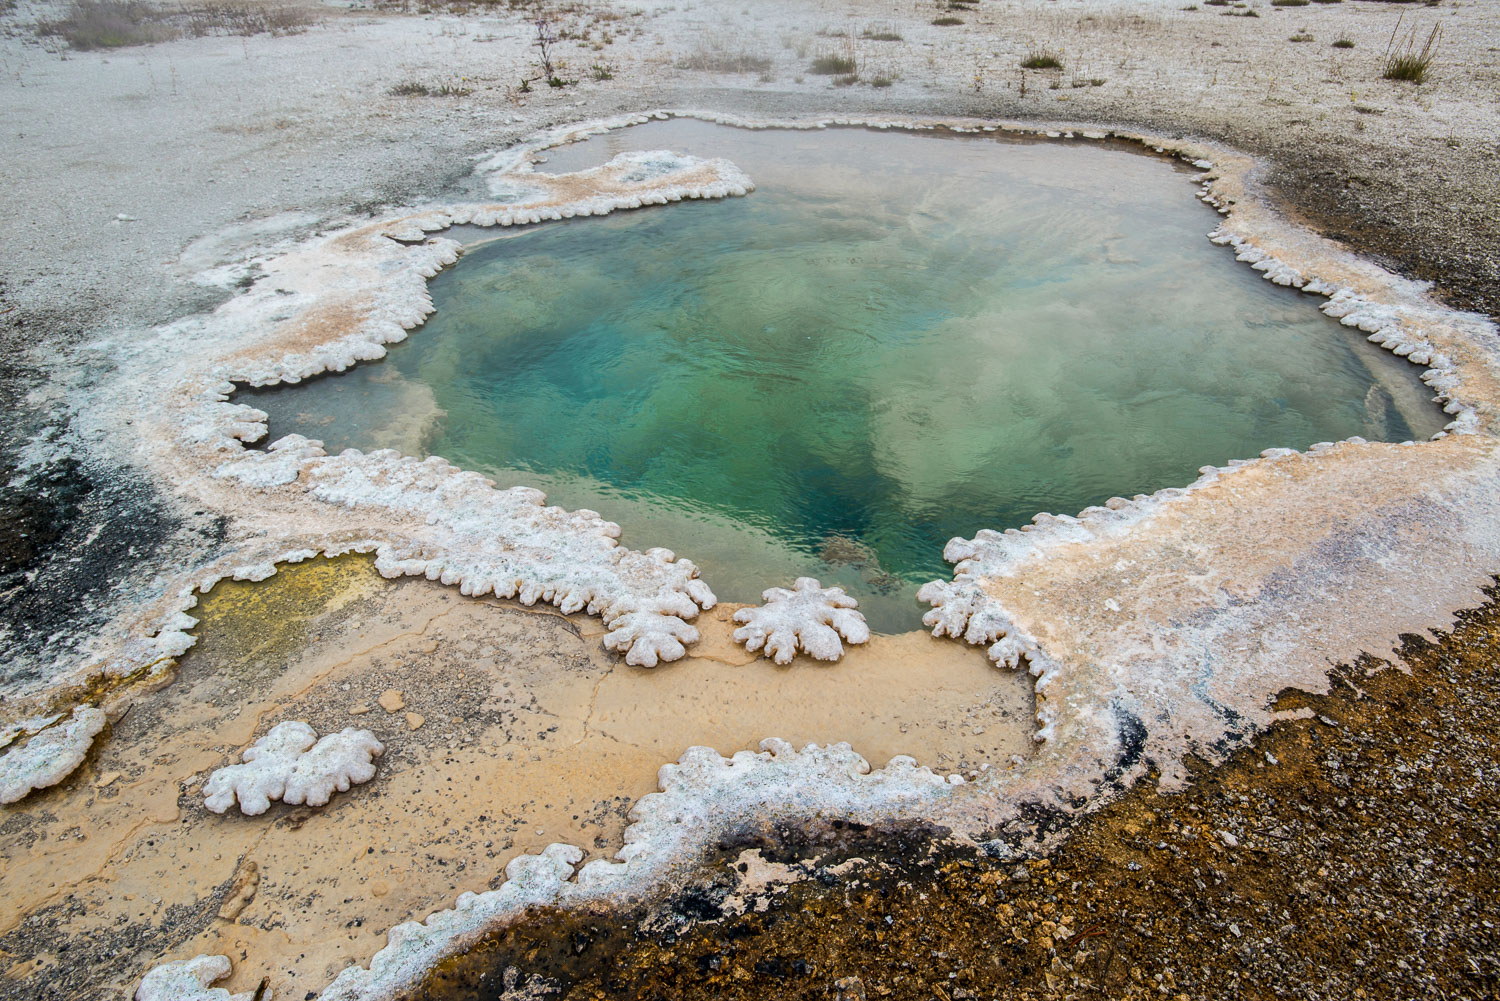 Shoshone Aqua Pool, Shoshone Geyser Basin, Yellowstone National